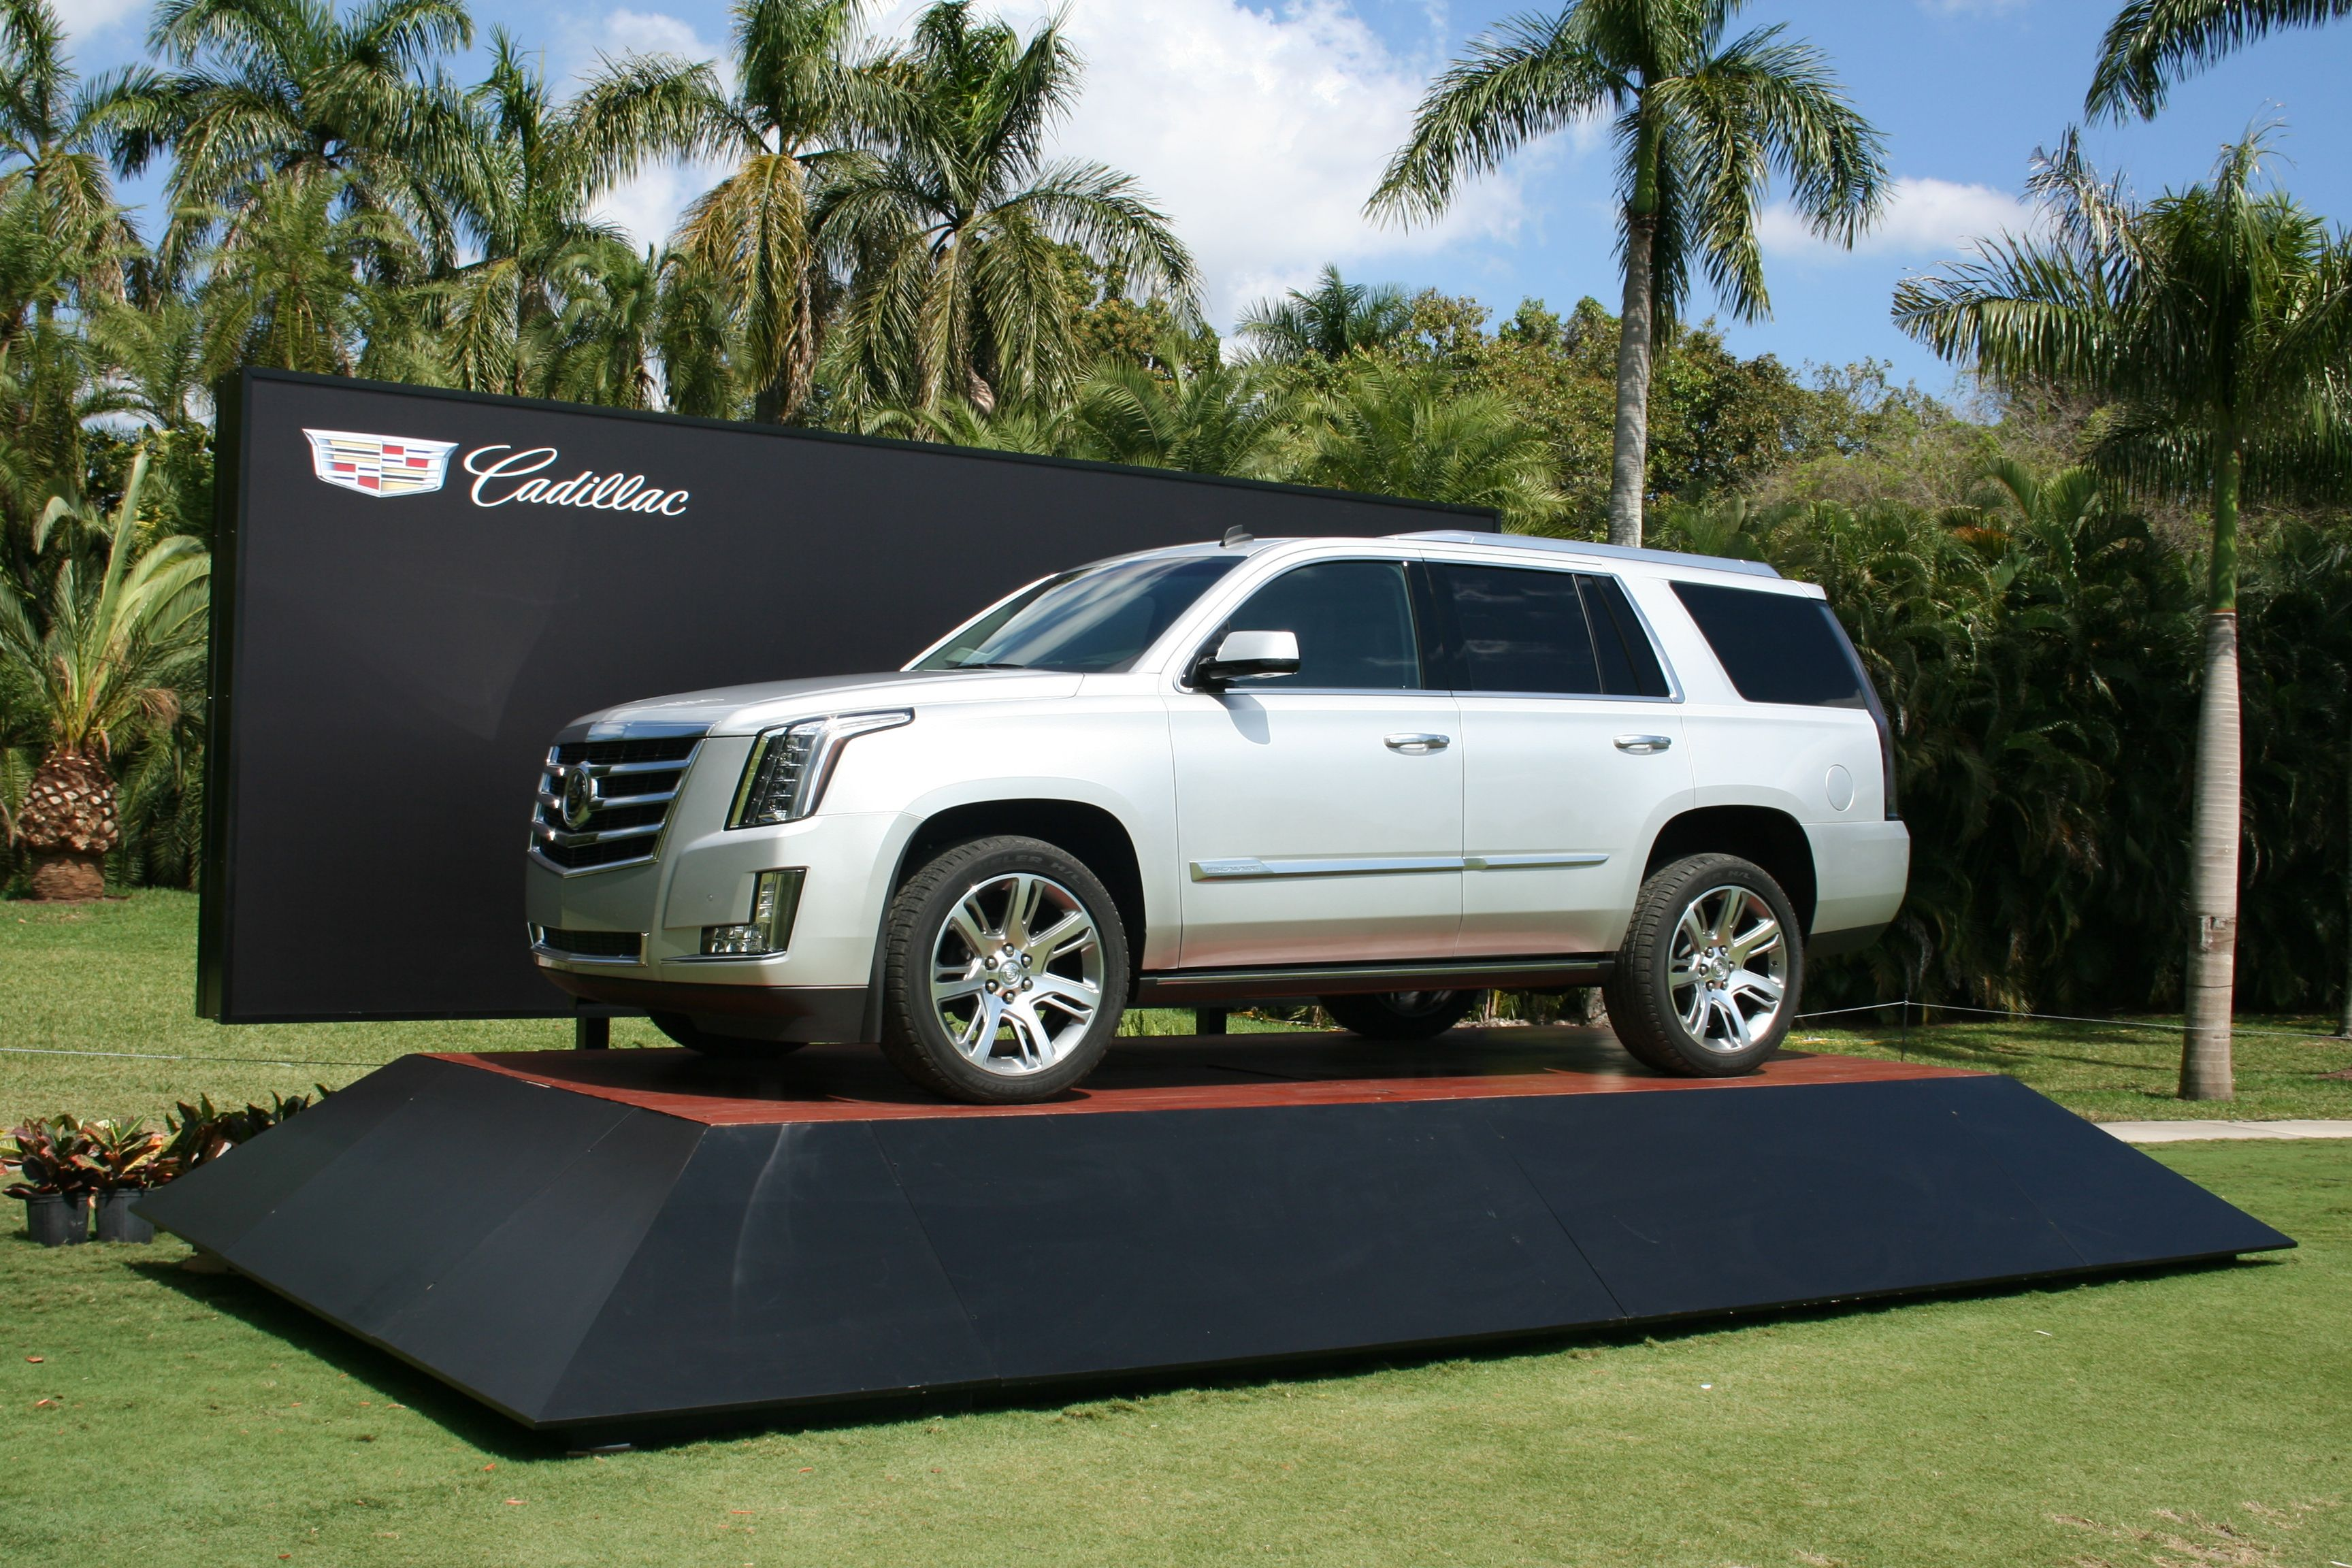 pin by cadillac on the 2014 wgc cadillac championship pinterest. Cars Review. Best American Auto & Cars Review